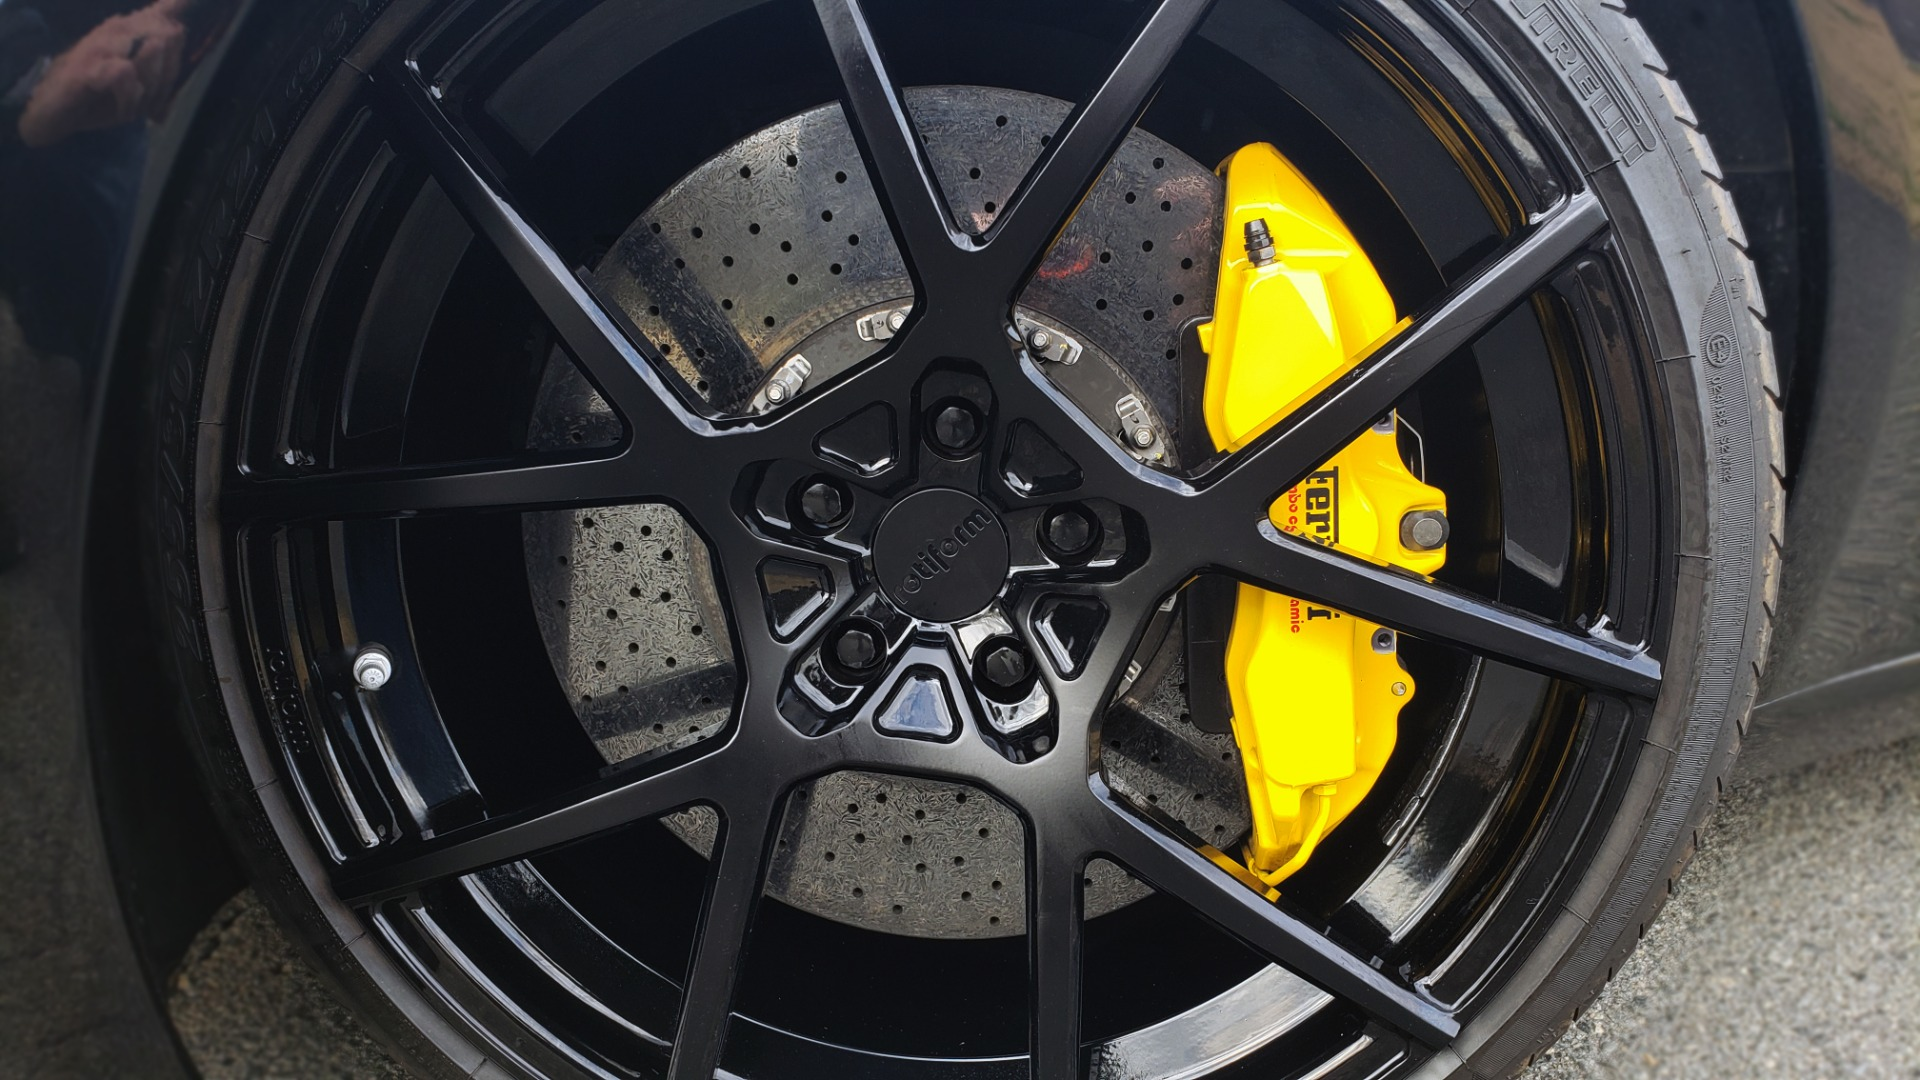 Used 2007 Ferrari 599 GTB FIORANO HGTE / V12 / F1 TRANS / NAV / BOSE / CUSTOM WHEELS for sale Sold at Formula Imports in Charlotte NC 28227 31